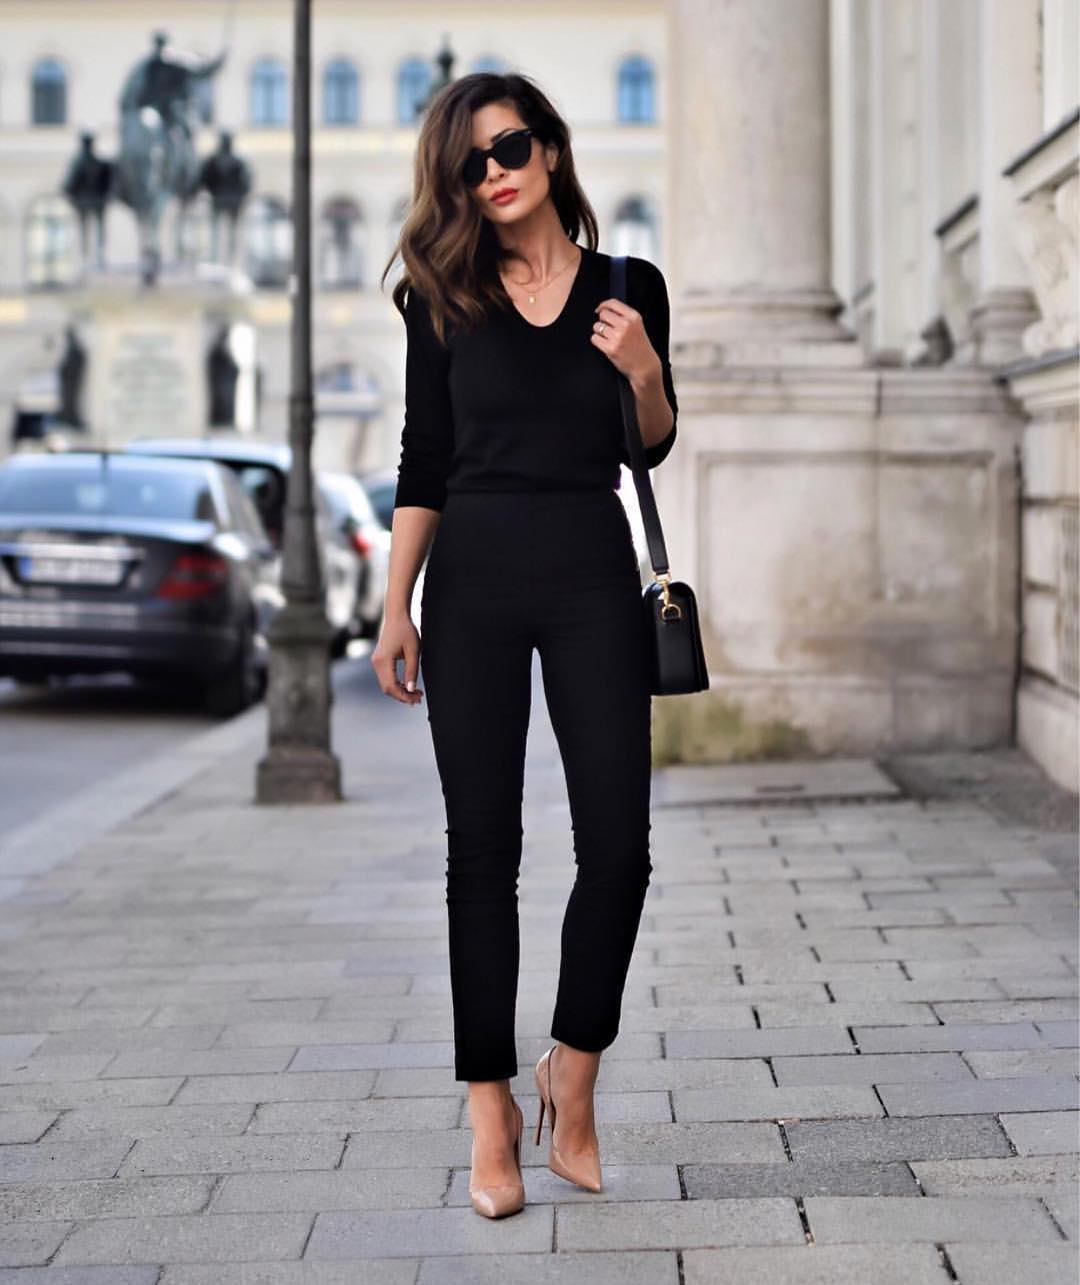 All Black Outfit Idea For Work: Sweater And Pants 2021